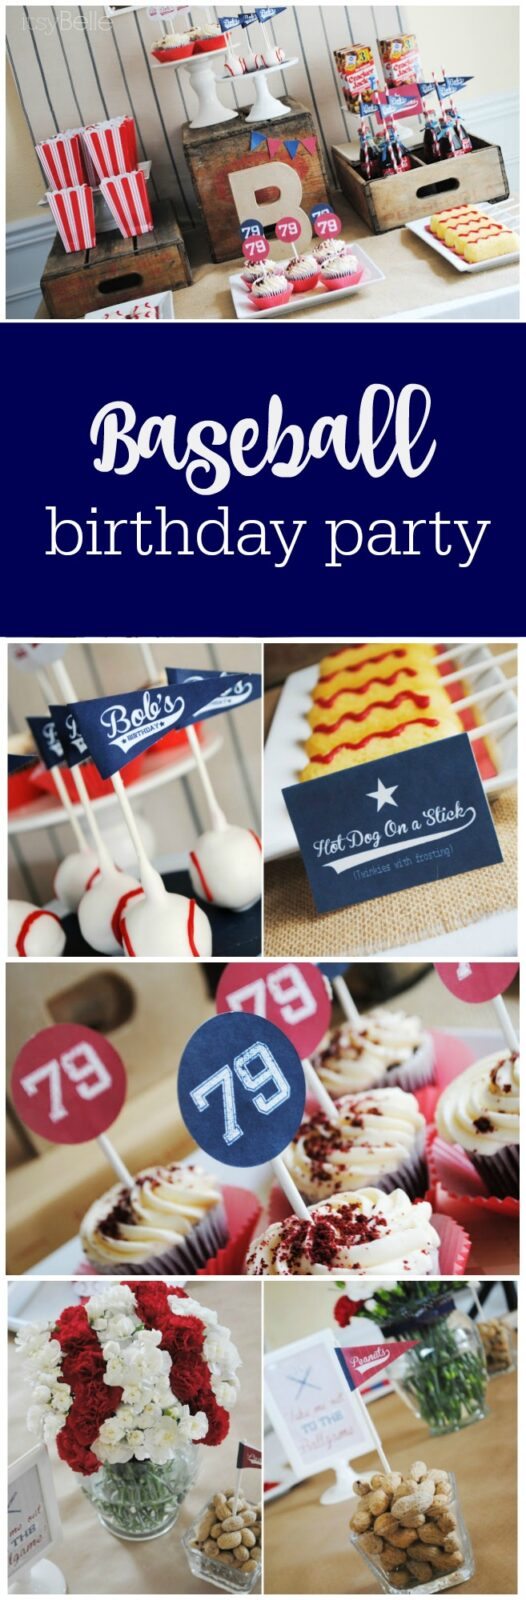 Baseball birthday party by Itsy Belle featured on The Party Teacher